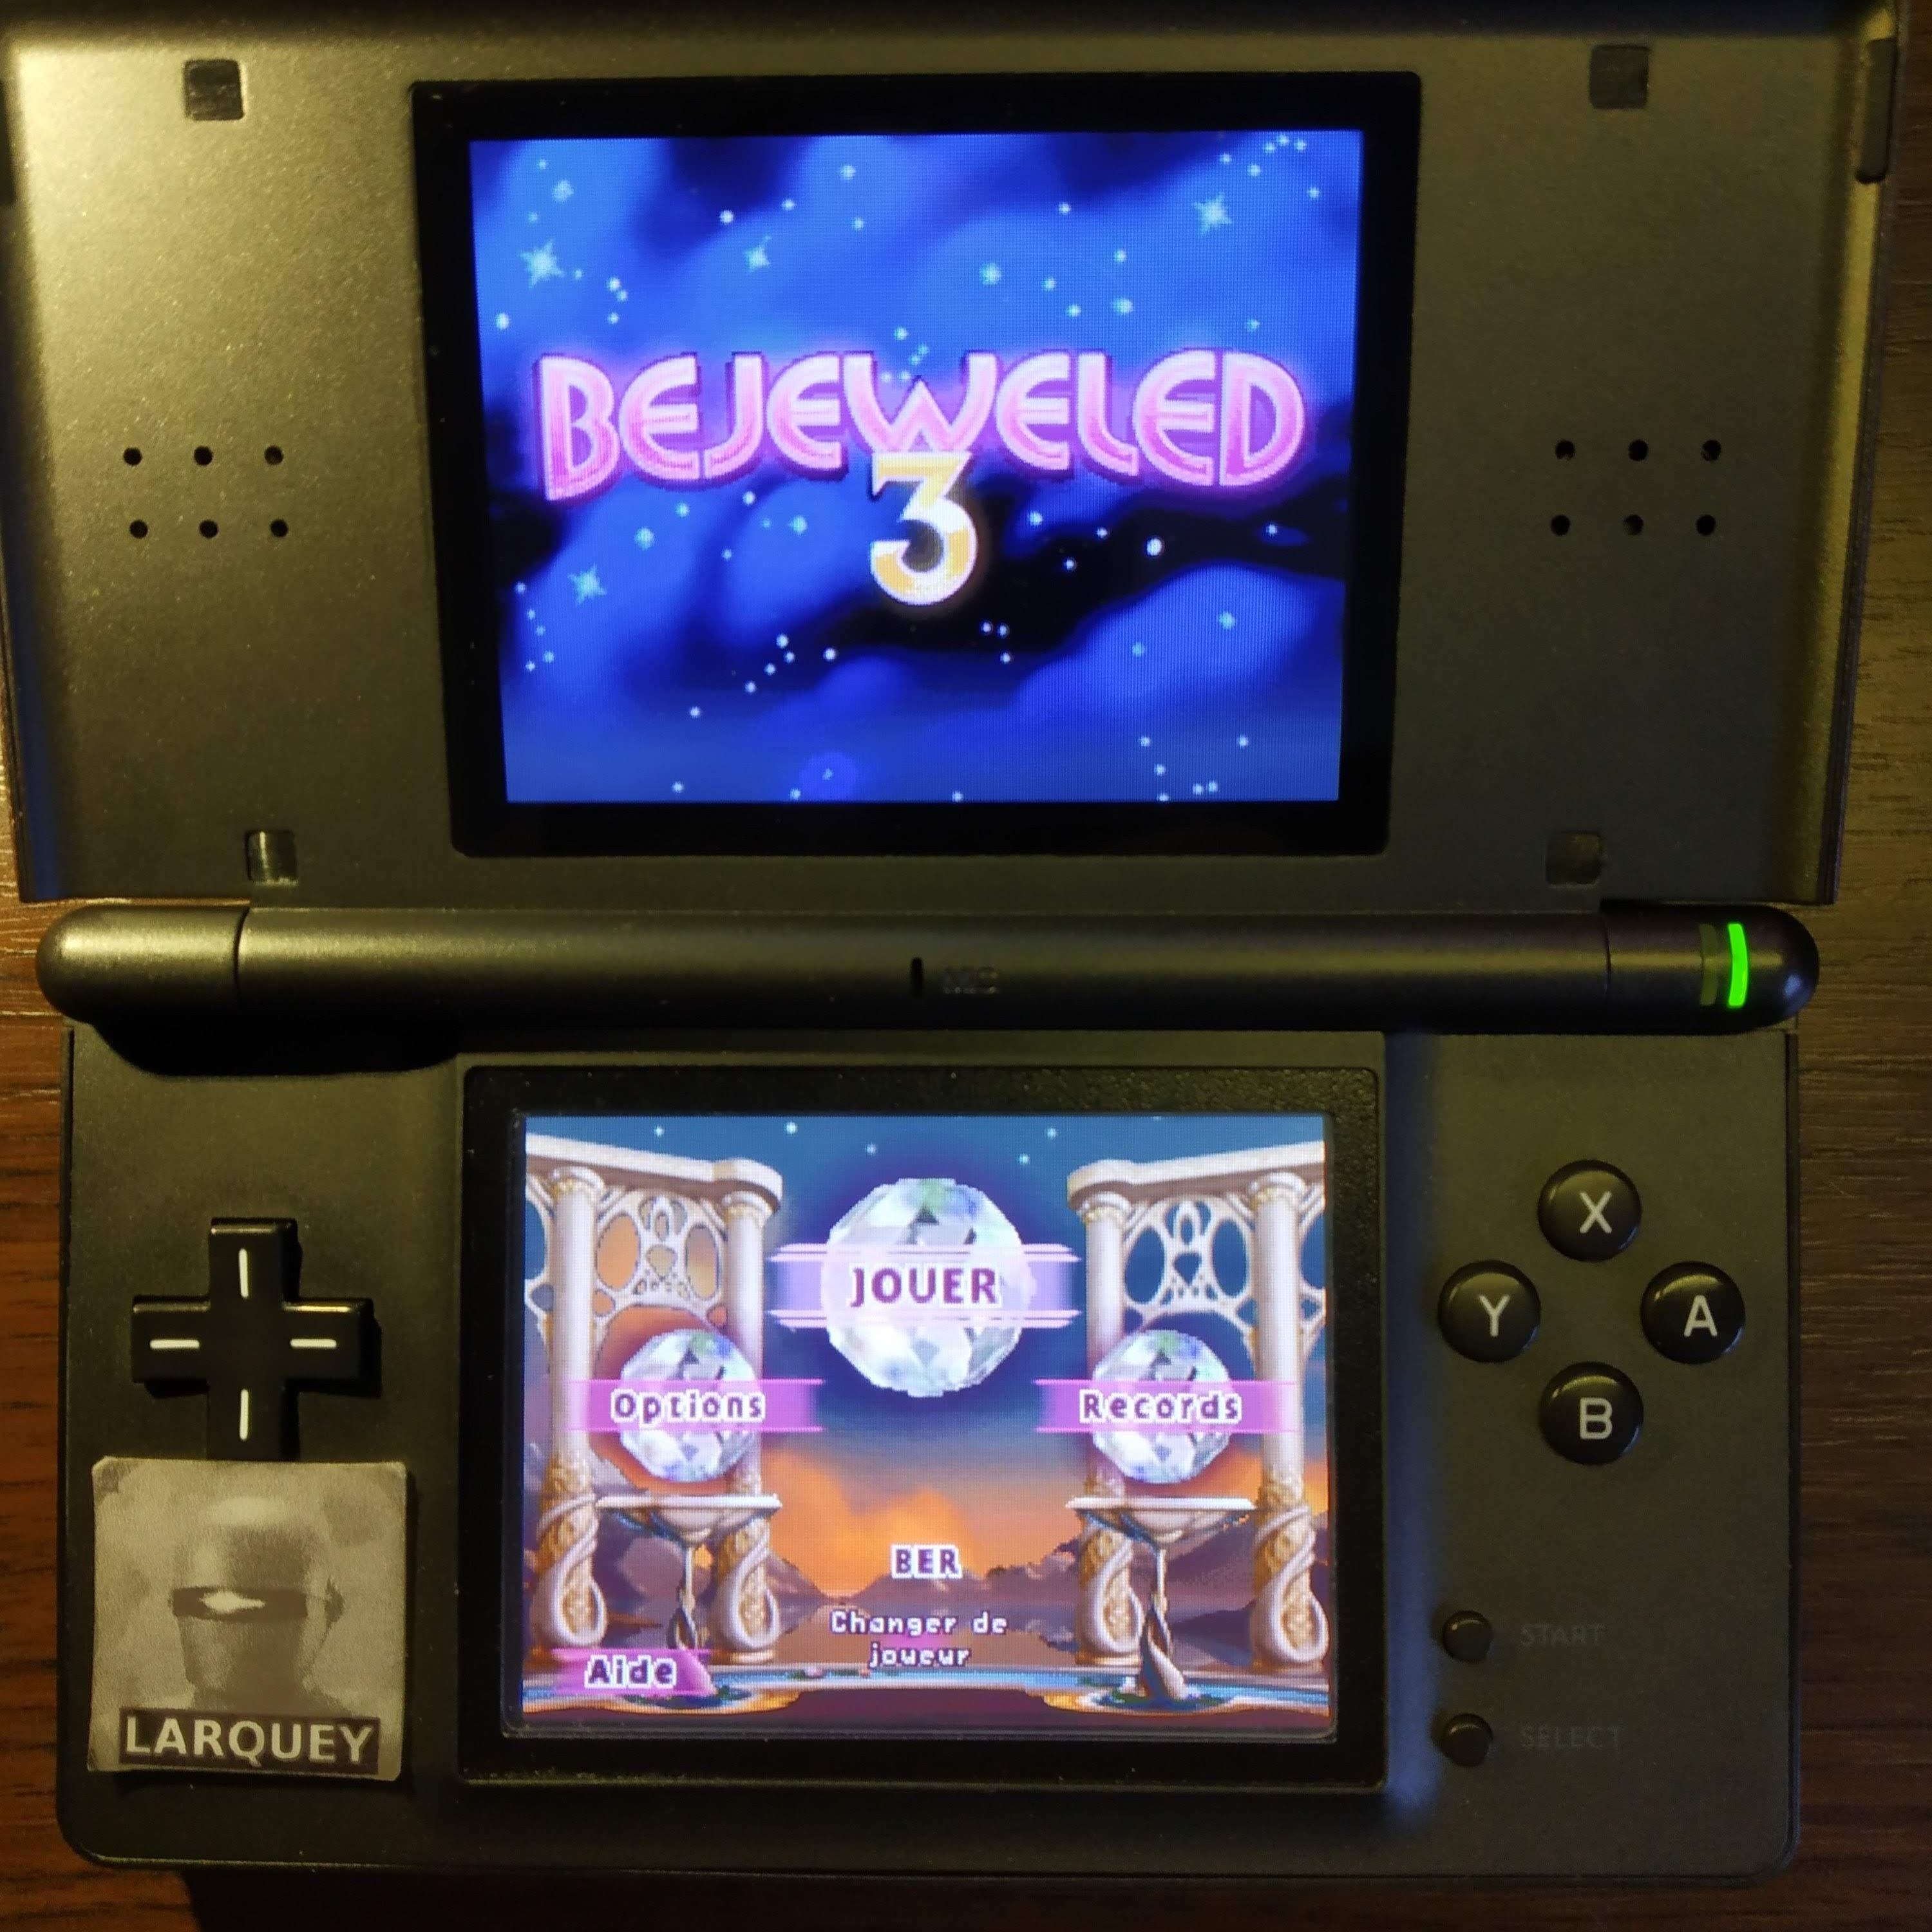 Larquey: Bejeweled 3: Classic [Number of Hypercubes] (Nintendo DS) 0 points on 2020-09-24 12:29:45